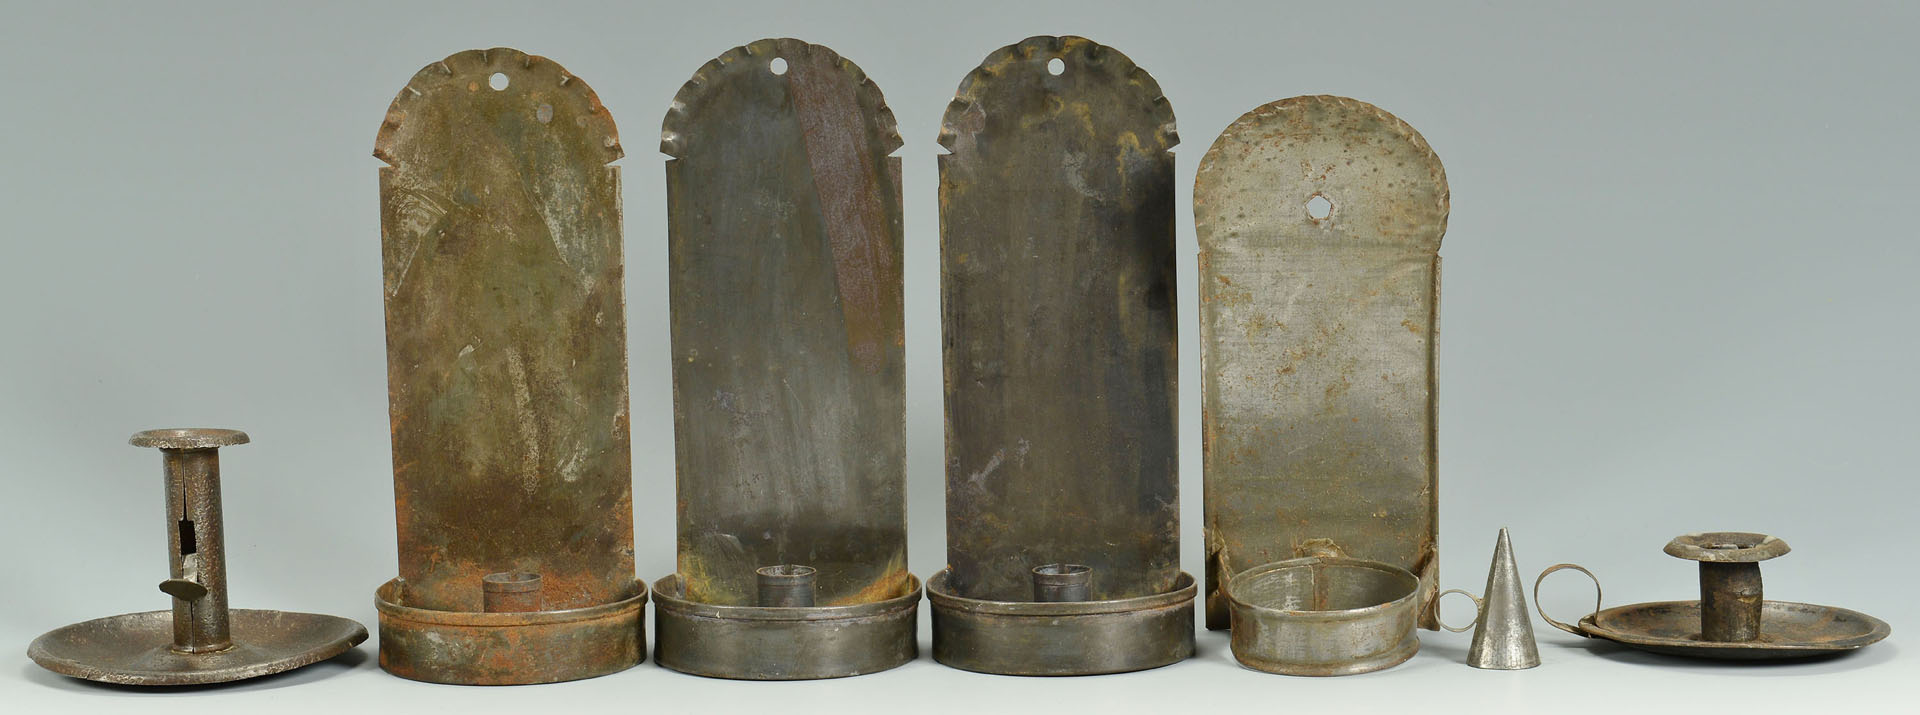 Lot 286: Grouping of Early Tin and Iron Lighting, 15 items